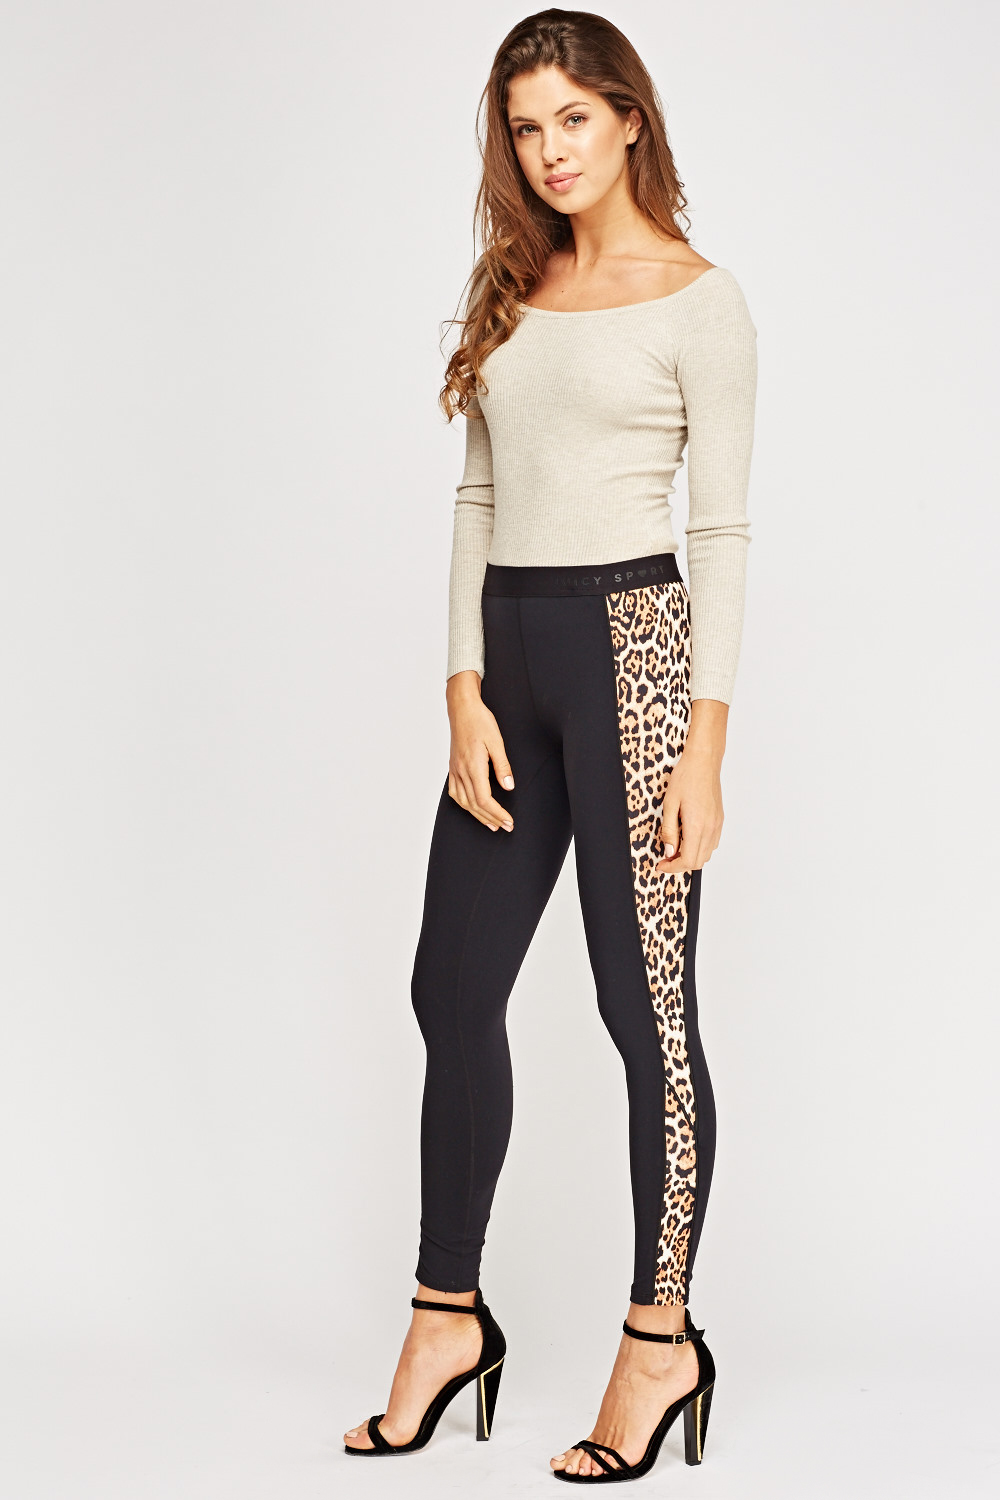 bc07a1cda2 Juicy Couture Sport Leopard Contrast Print Leggings - Limited edition